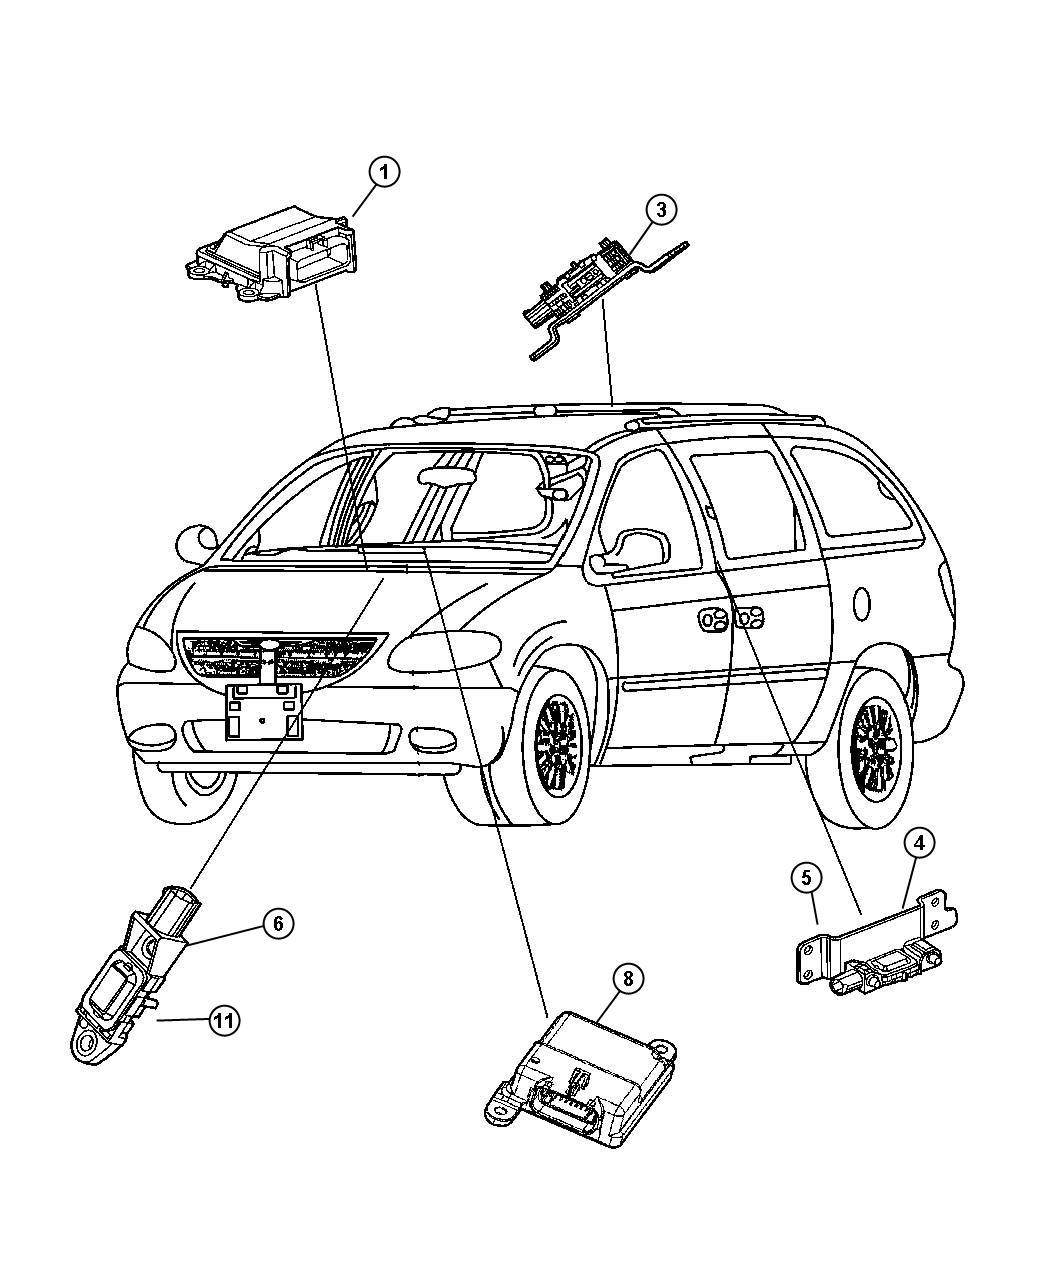 hight resolution of cadillac power seat wiring diagram cadillac discover your wiring dodge grand caravan air bag sensor location